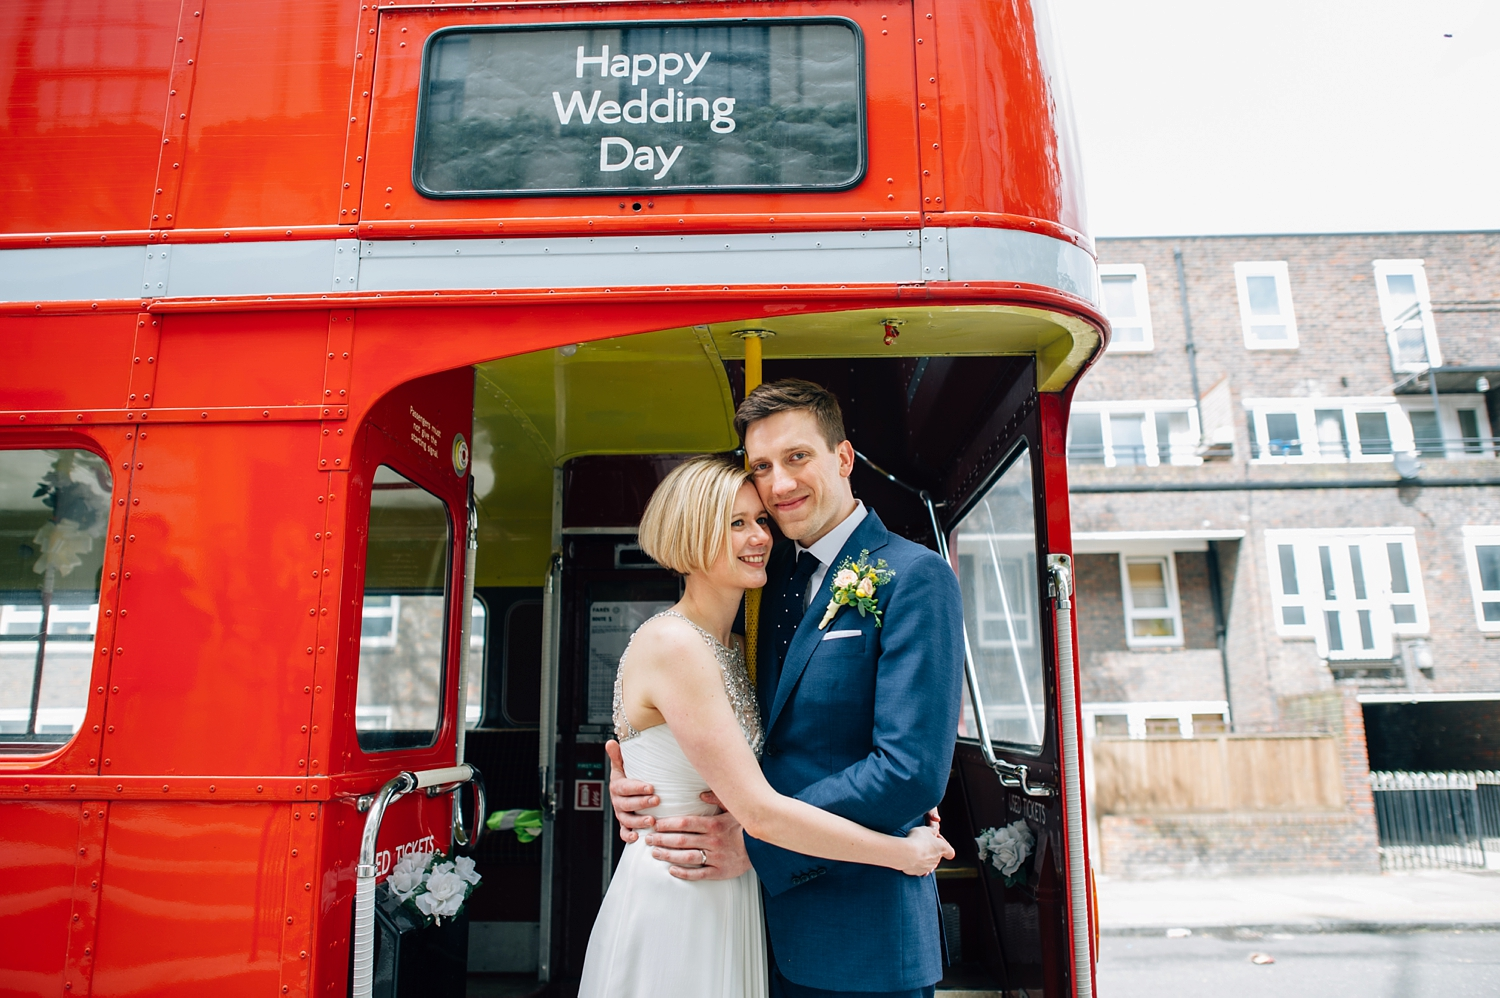 0079-lisa-devine-alternative-wedding-photography-london-hackney-dalston-london-photography-townhall-hotel.JPG